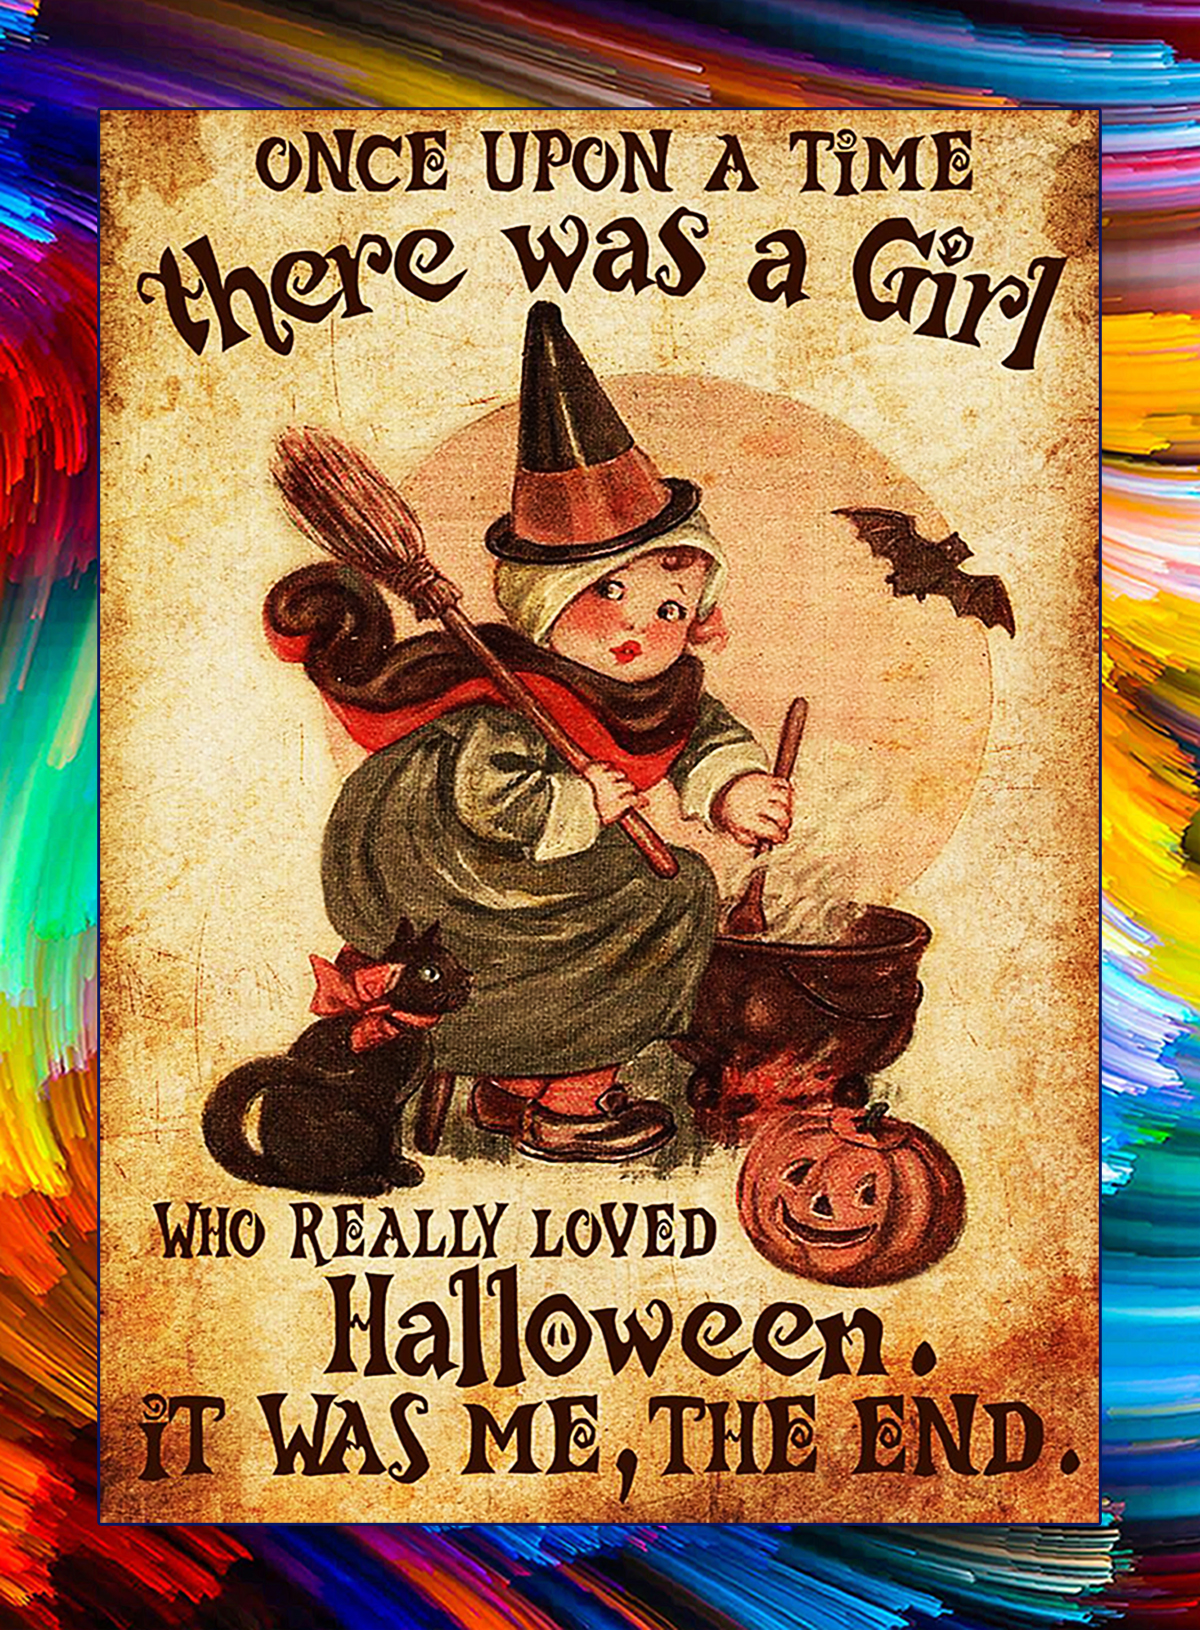 There was a girl who really loved halloween poster - A1